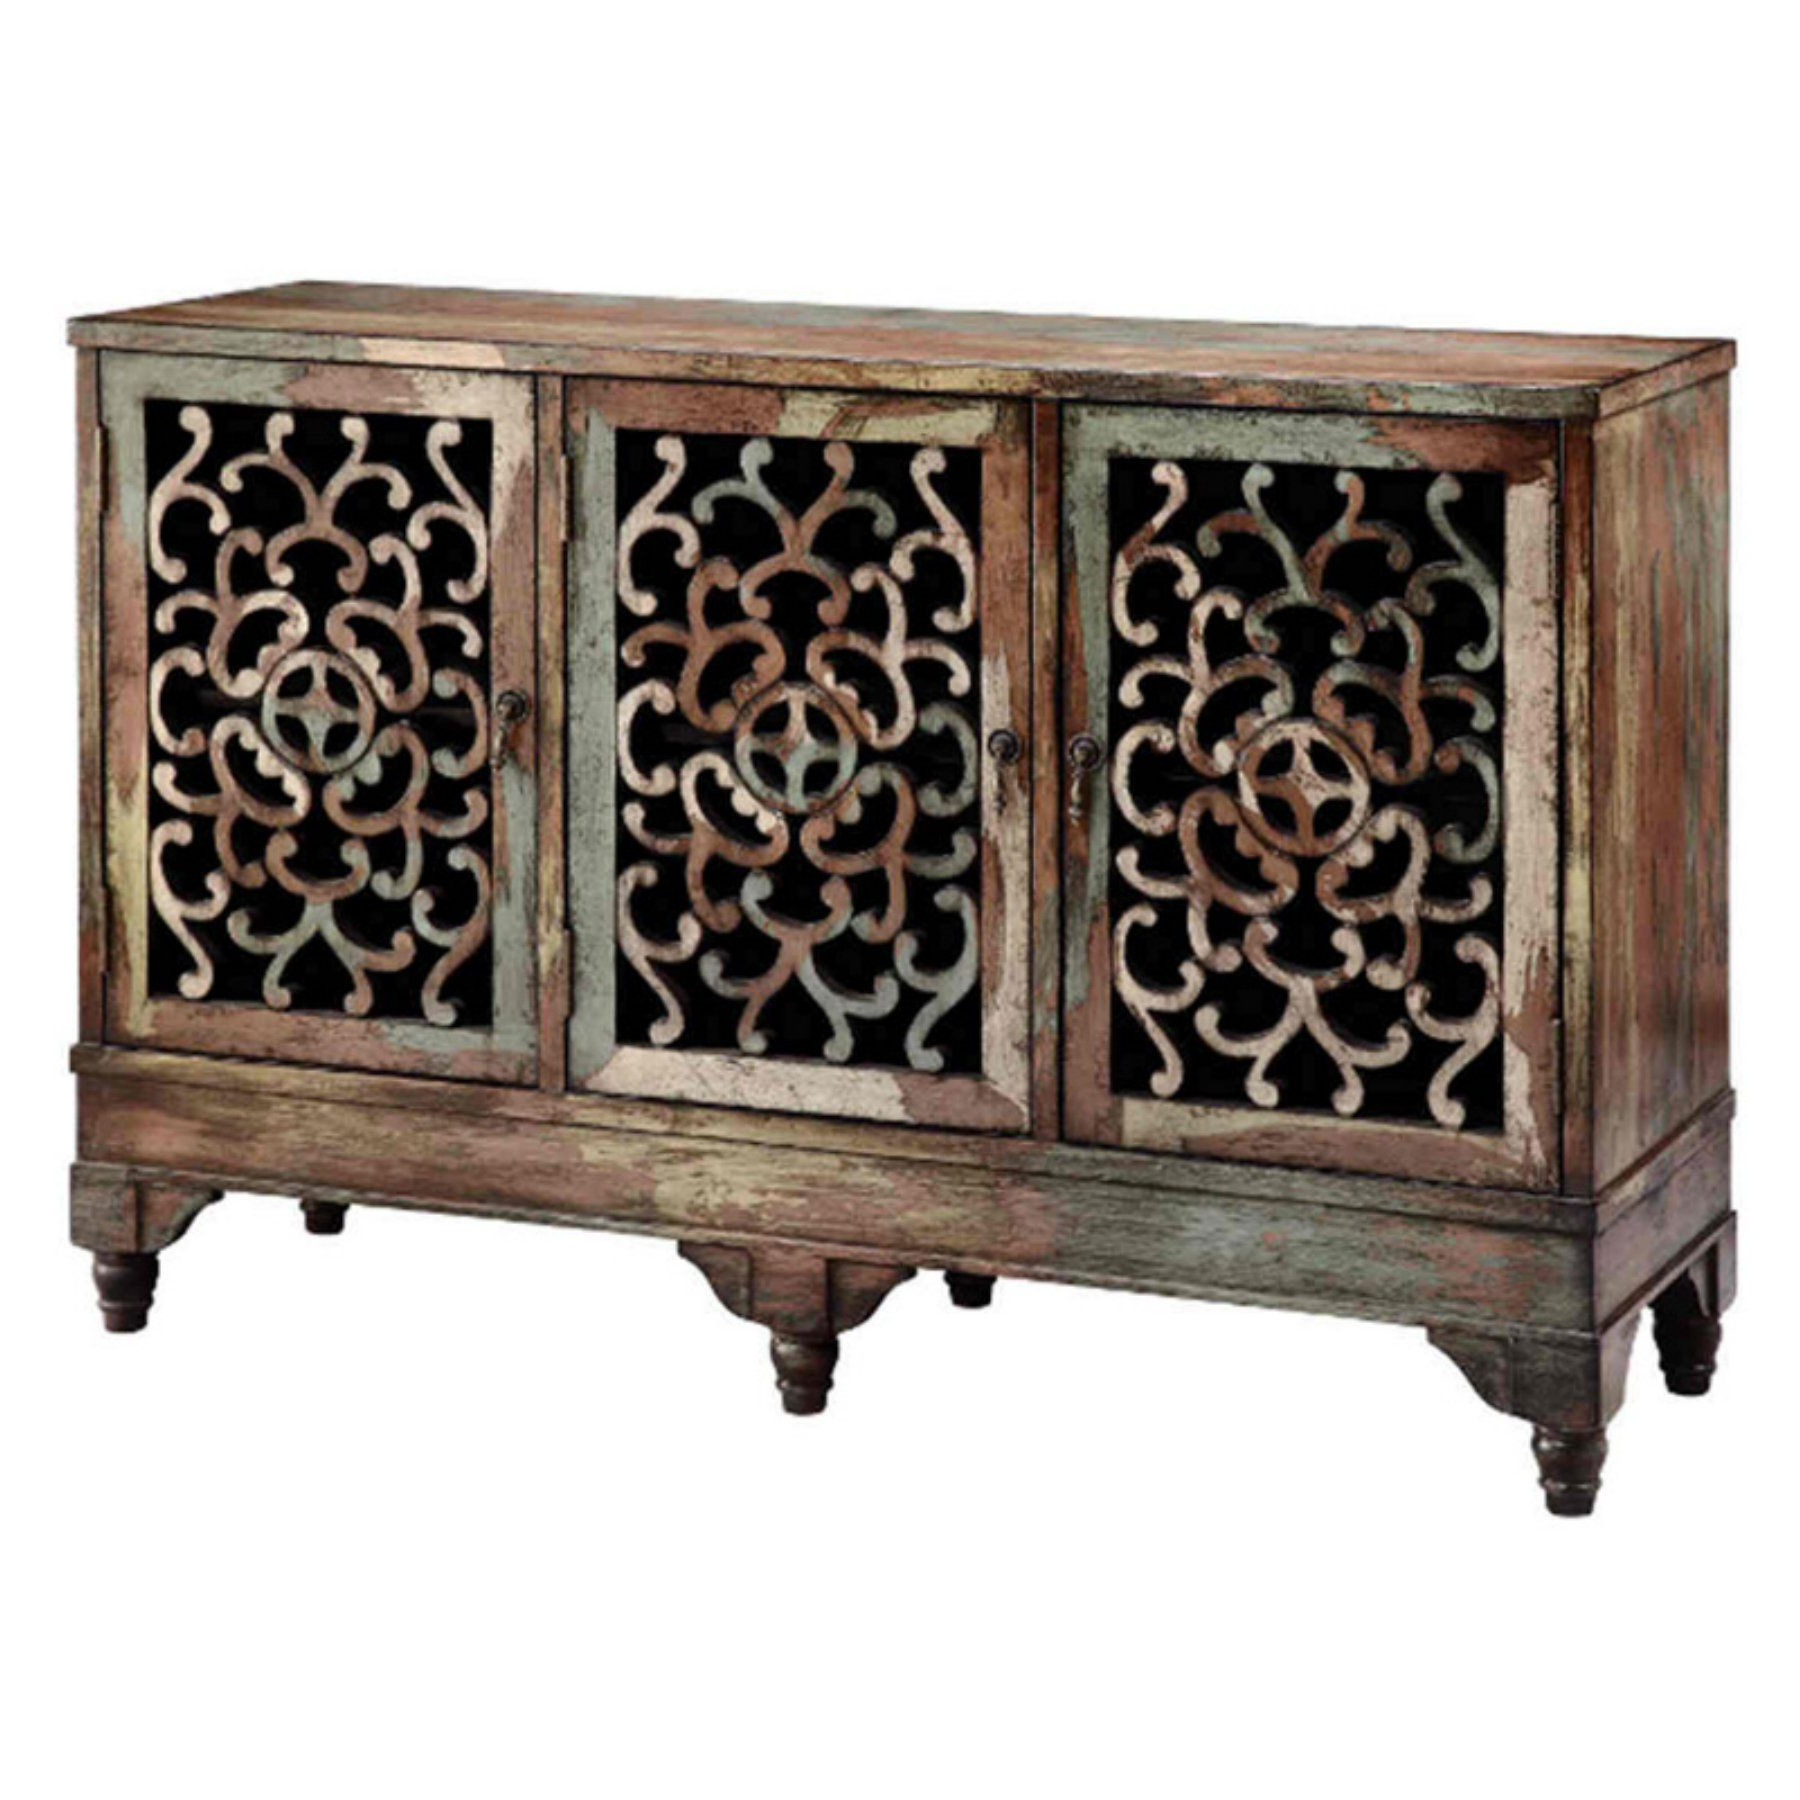 Ruskin Sideboards Throughout Fashionable Stein World Ruskin Cabinet Three Door Accent Cabinet (View 2 of 20)